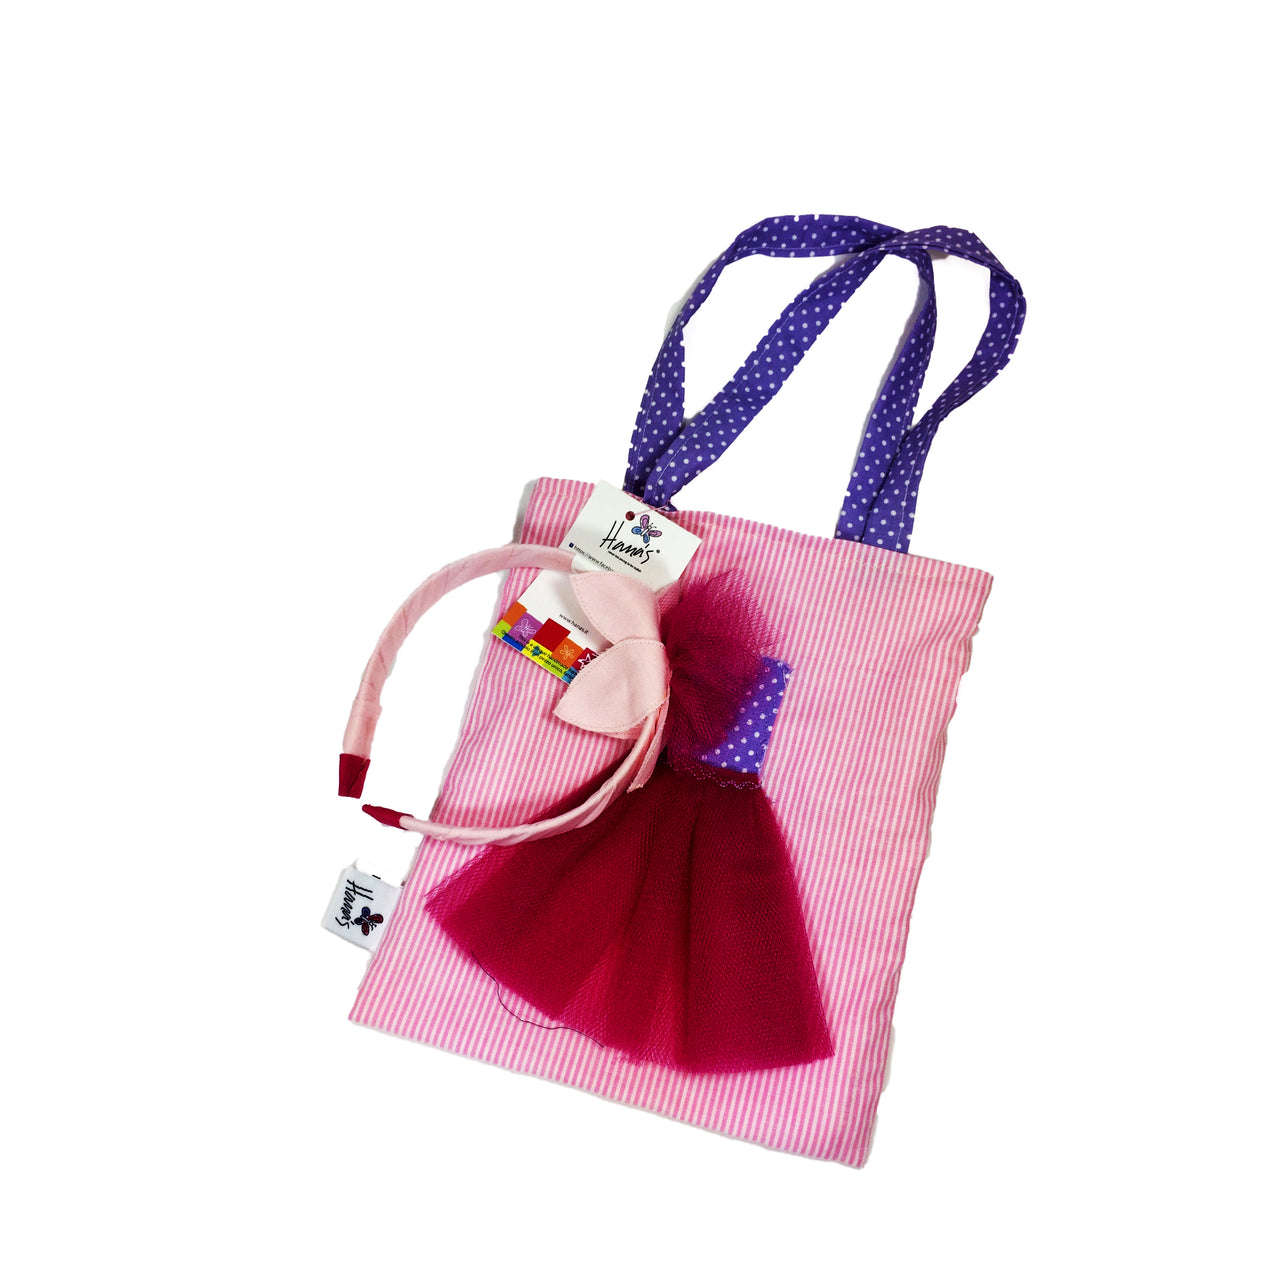 The pink ballerina bag and headband is one of our best seller gifts for girls! Hand sewn of 100% cotton fabric and layered with colourful pieces of fabric, the bag is reve